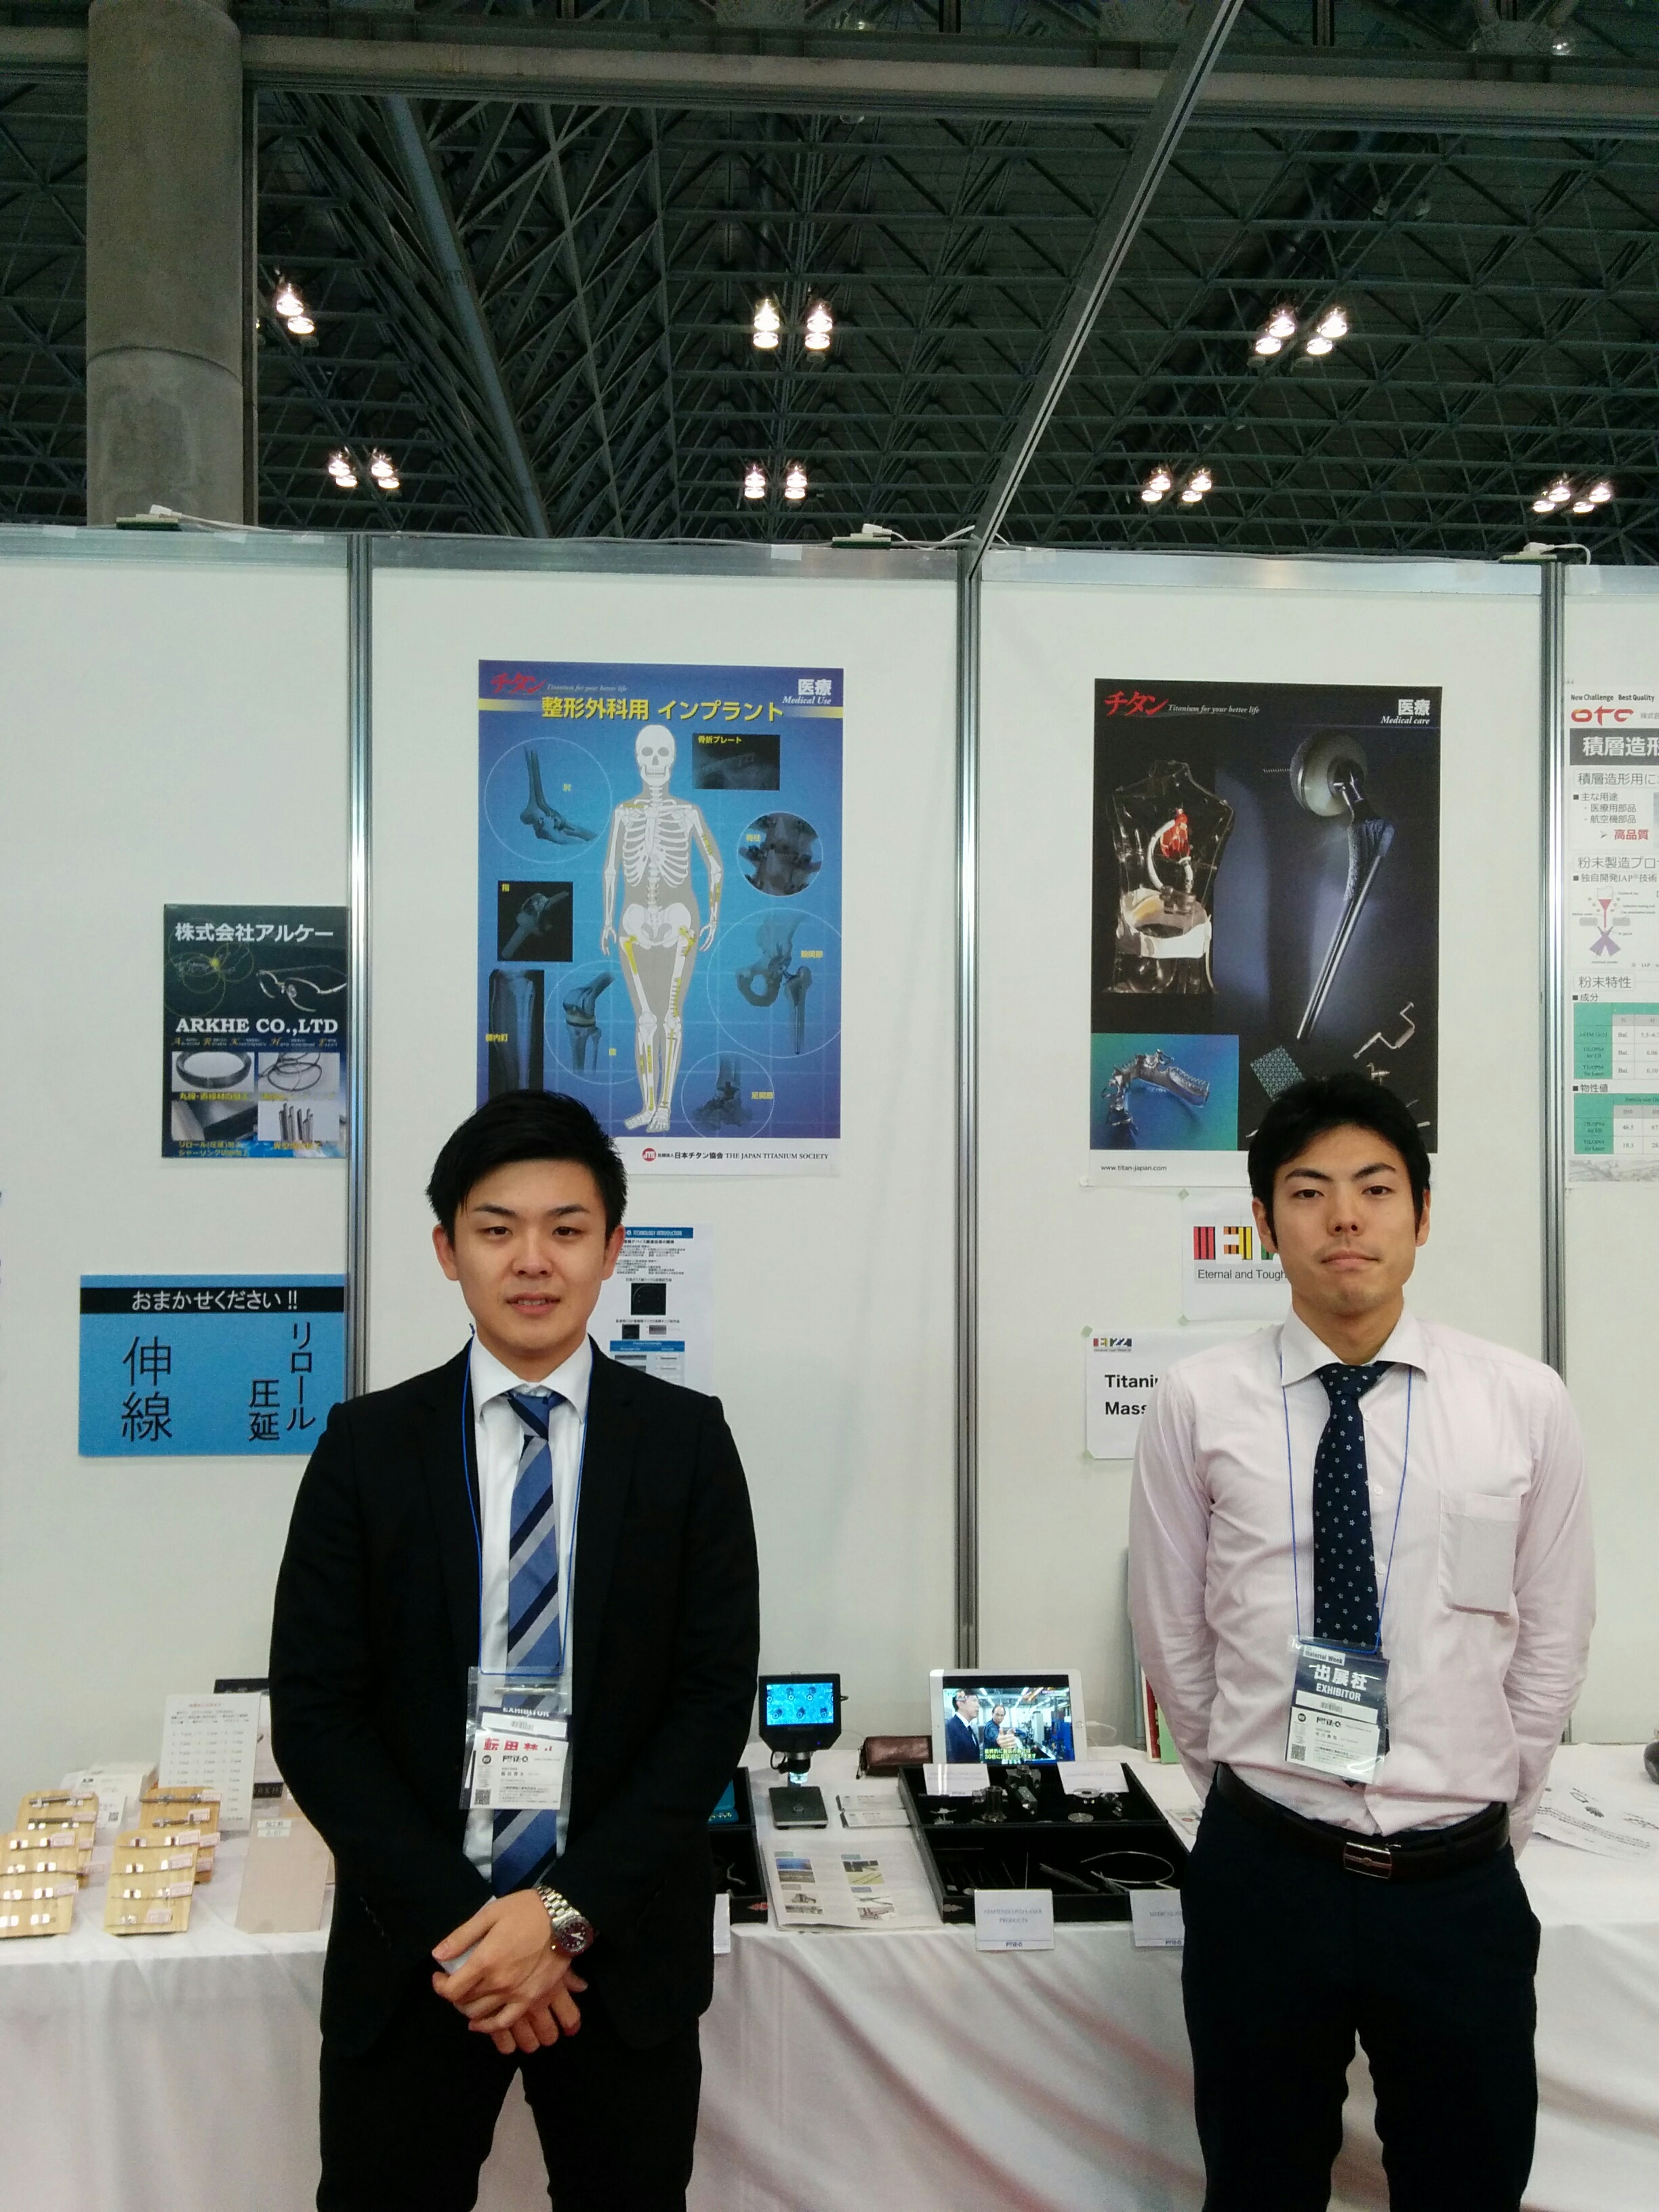 Thank you for visiting our booth at  METAL EXPO